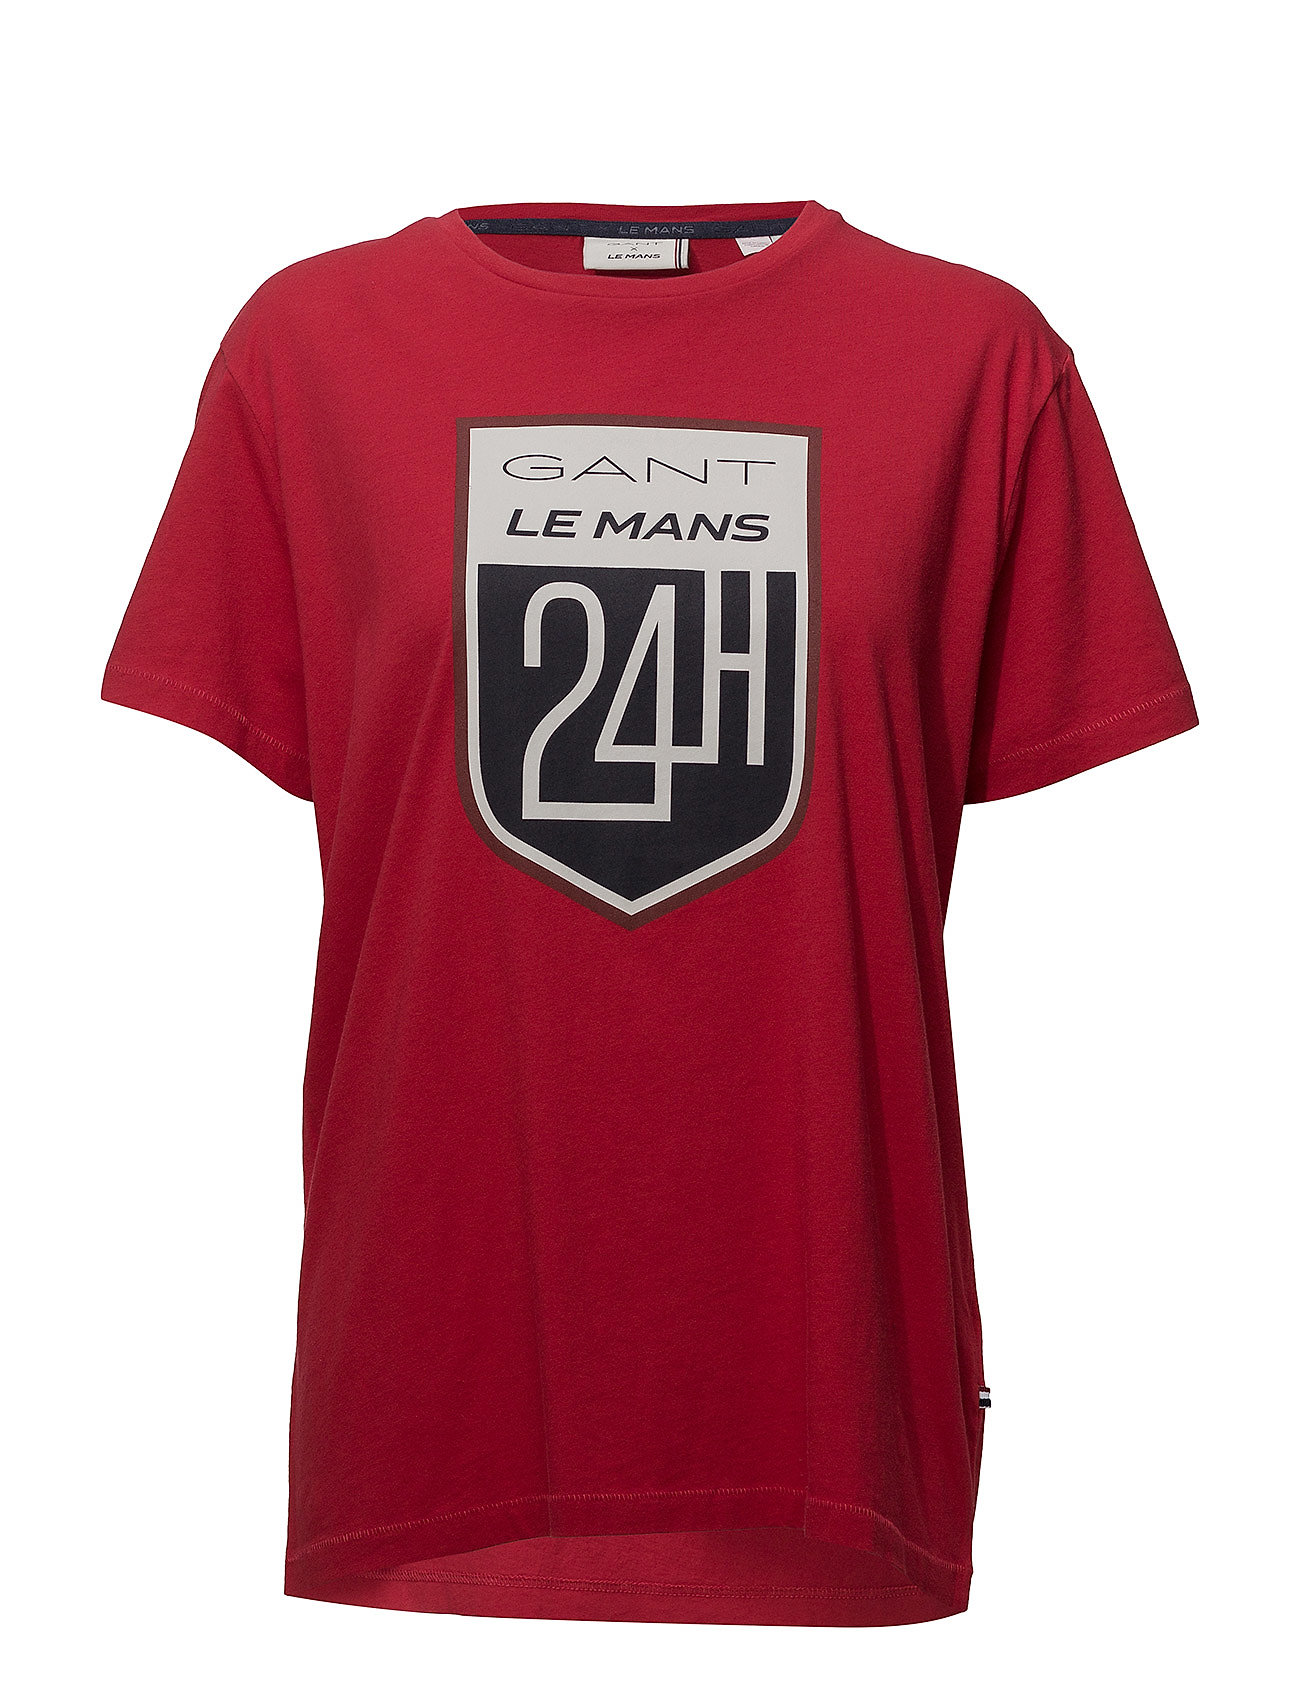 Gant LM. SS T-SHIRT - RED